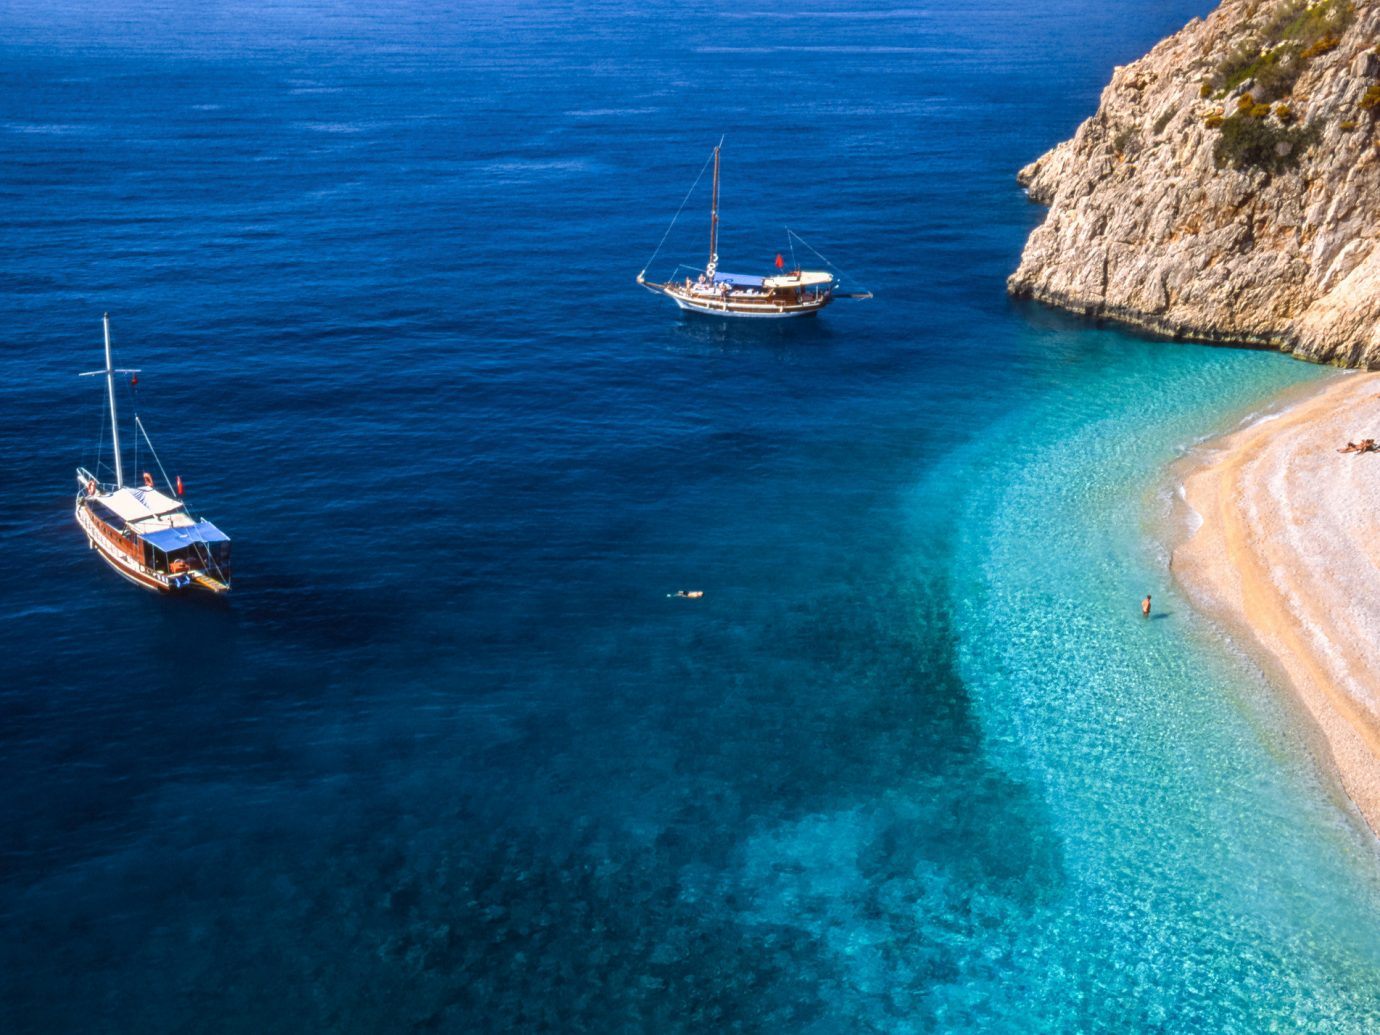 Beach water outdoor Sea coastal and oceanic landforms Boat body of water Ocean promontory Coast azure sky terrain bay calm cape Lagoon Island vacation cliff wave inlet blue shipwreck tropics Harbor cove yacht distance